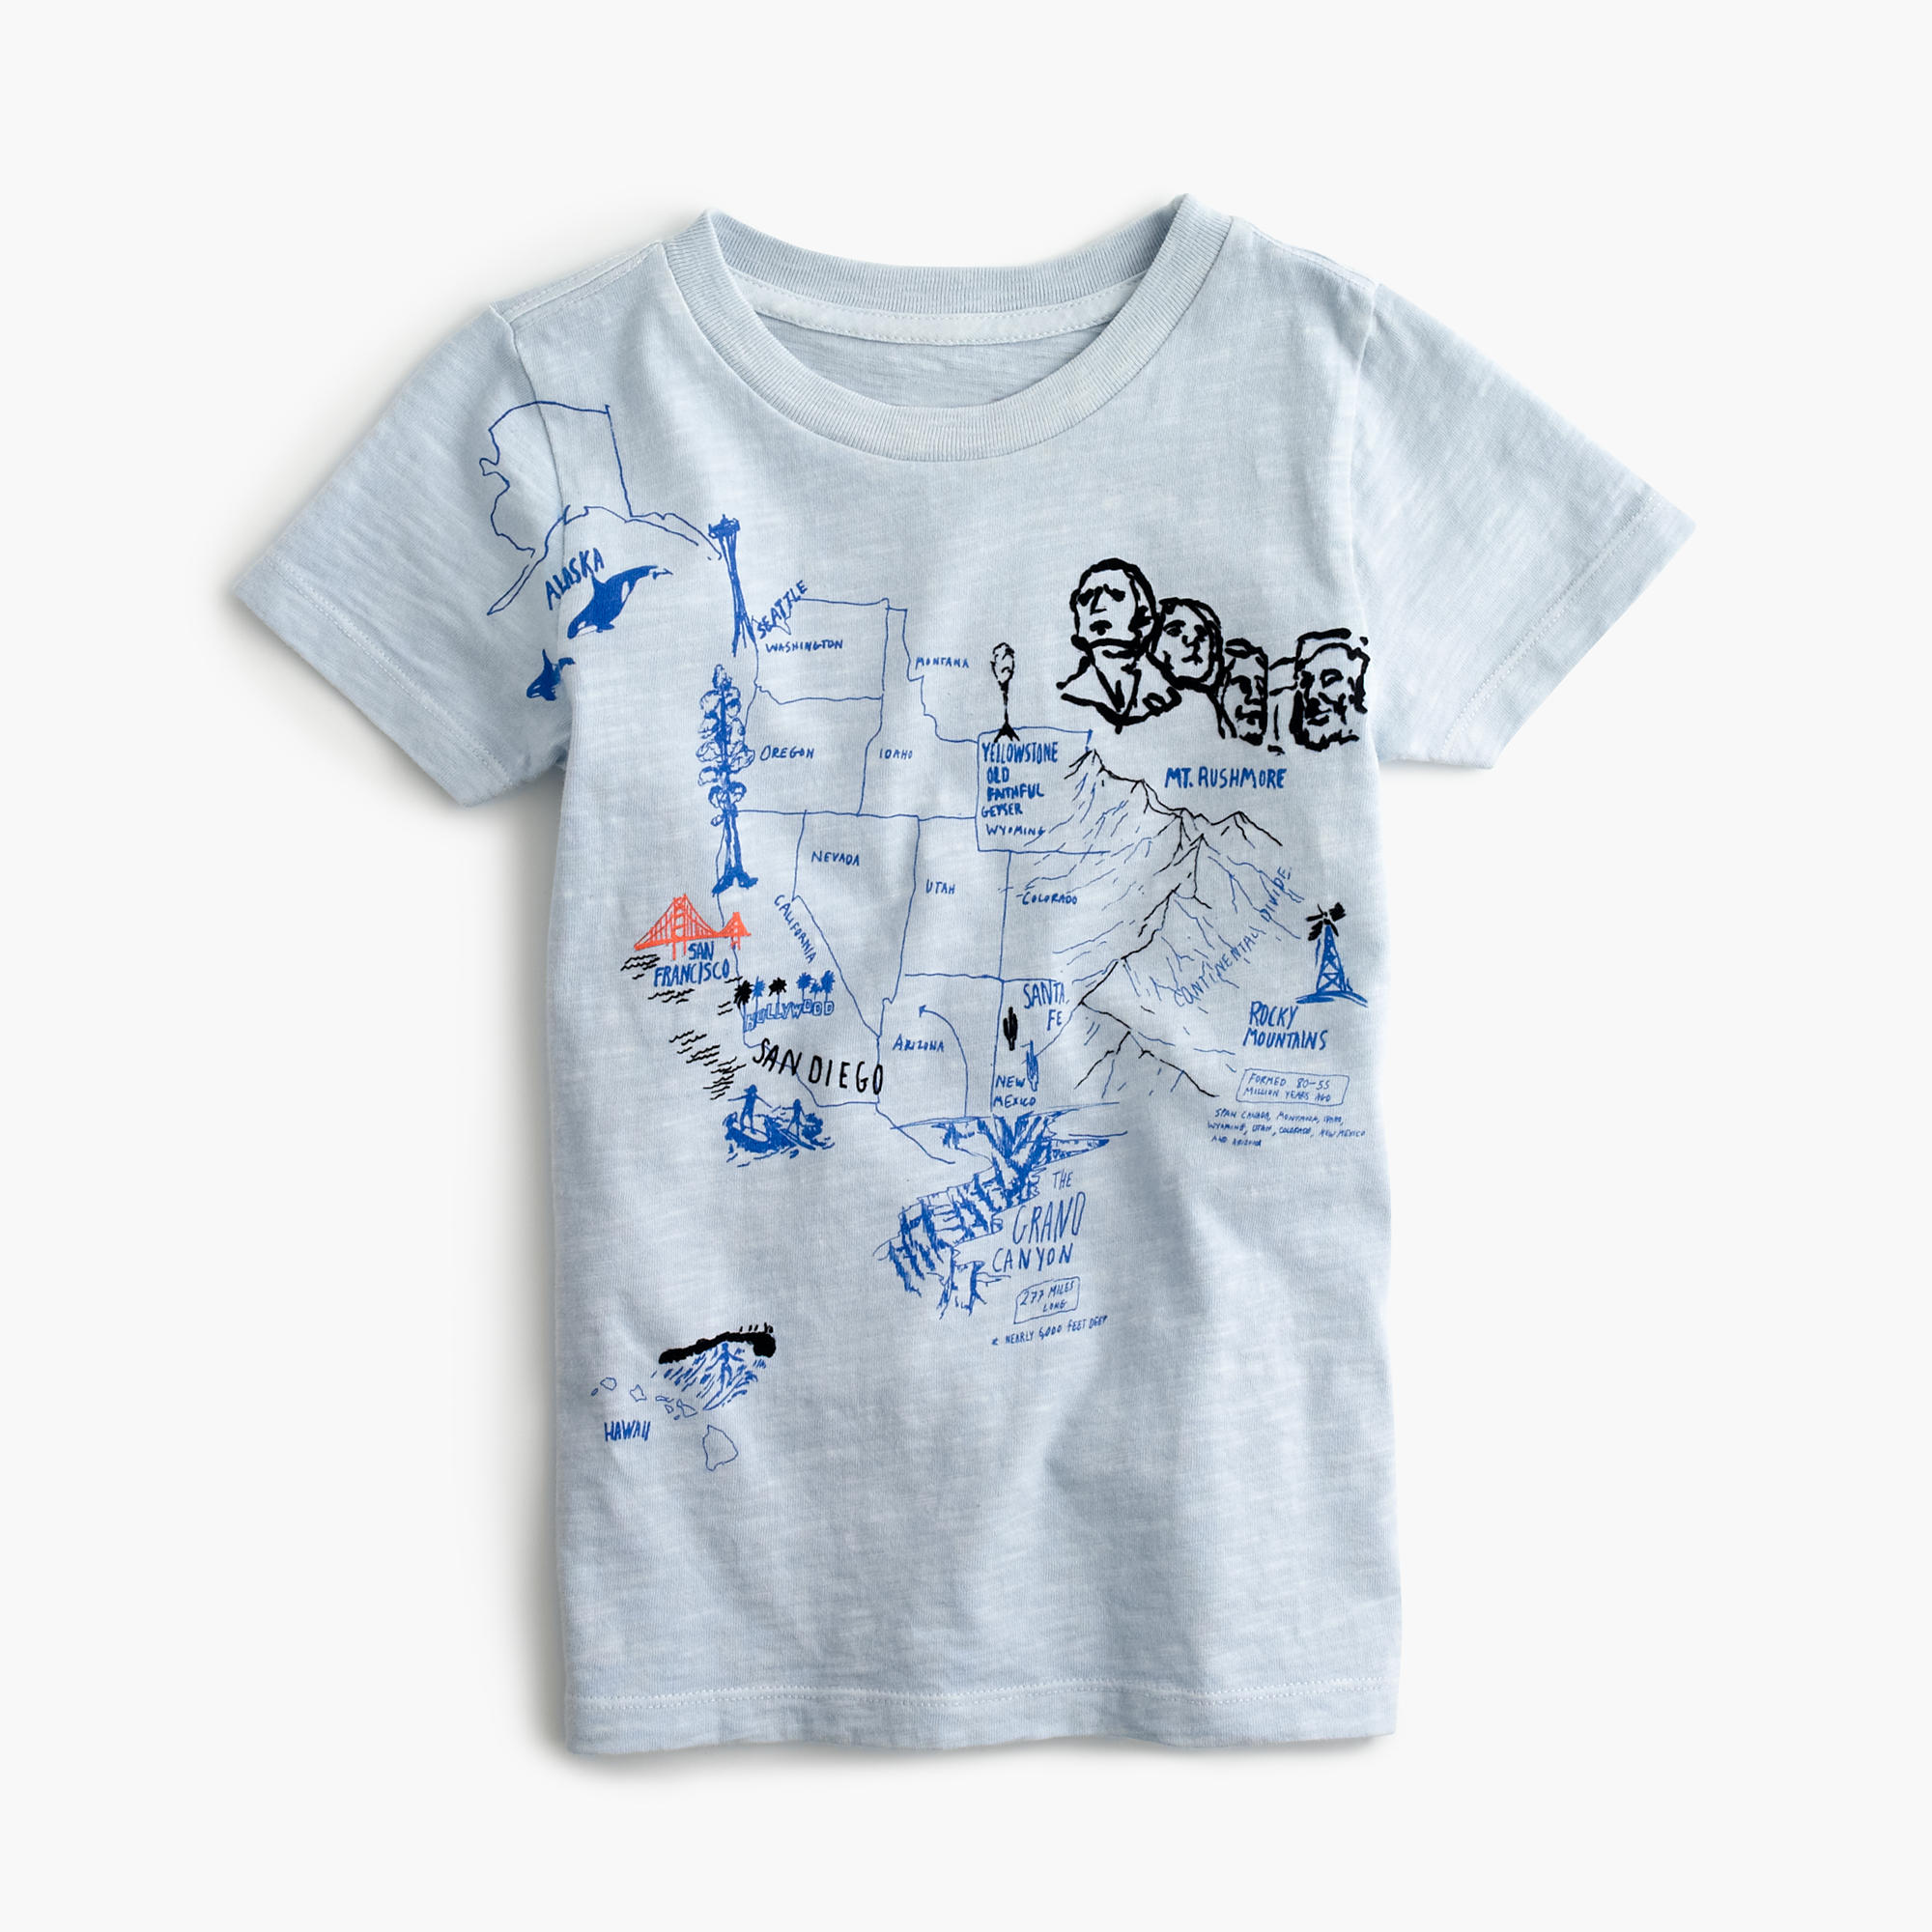 Boys 39 Garment Dyed Graphic T Shirt J Crew